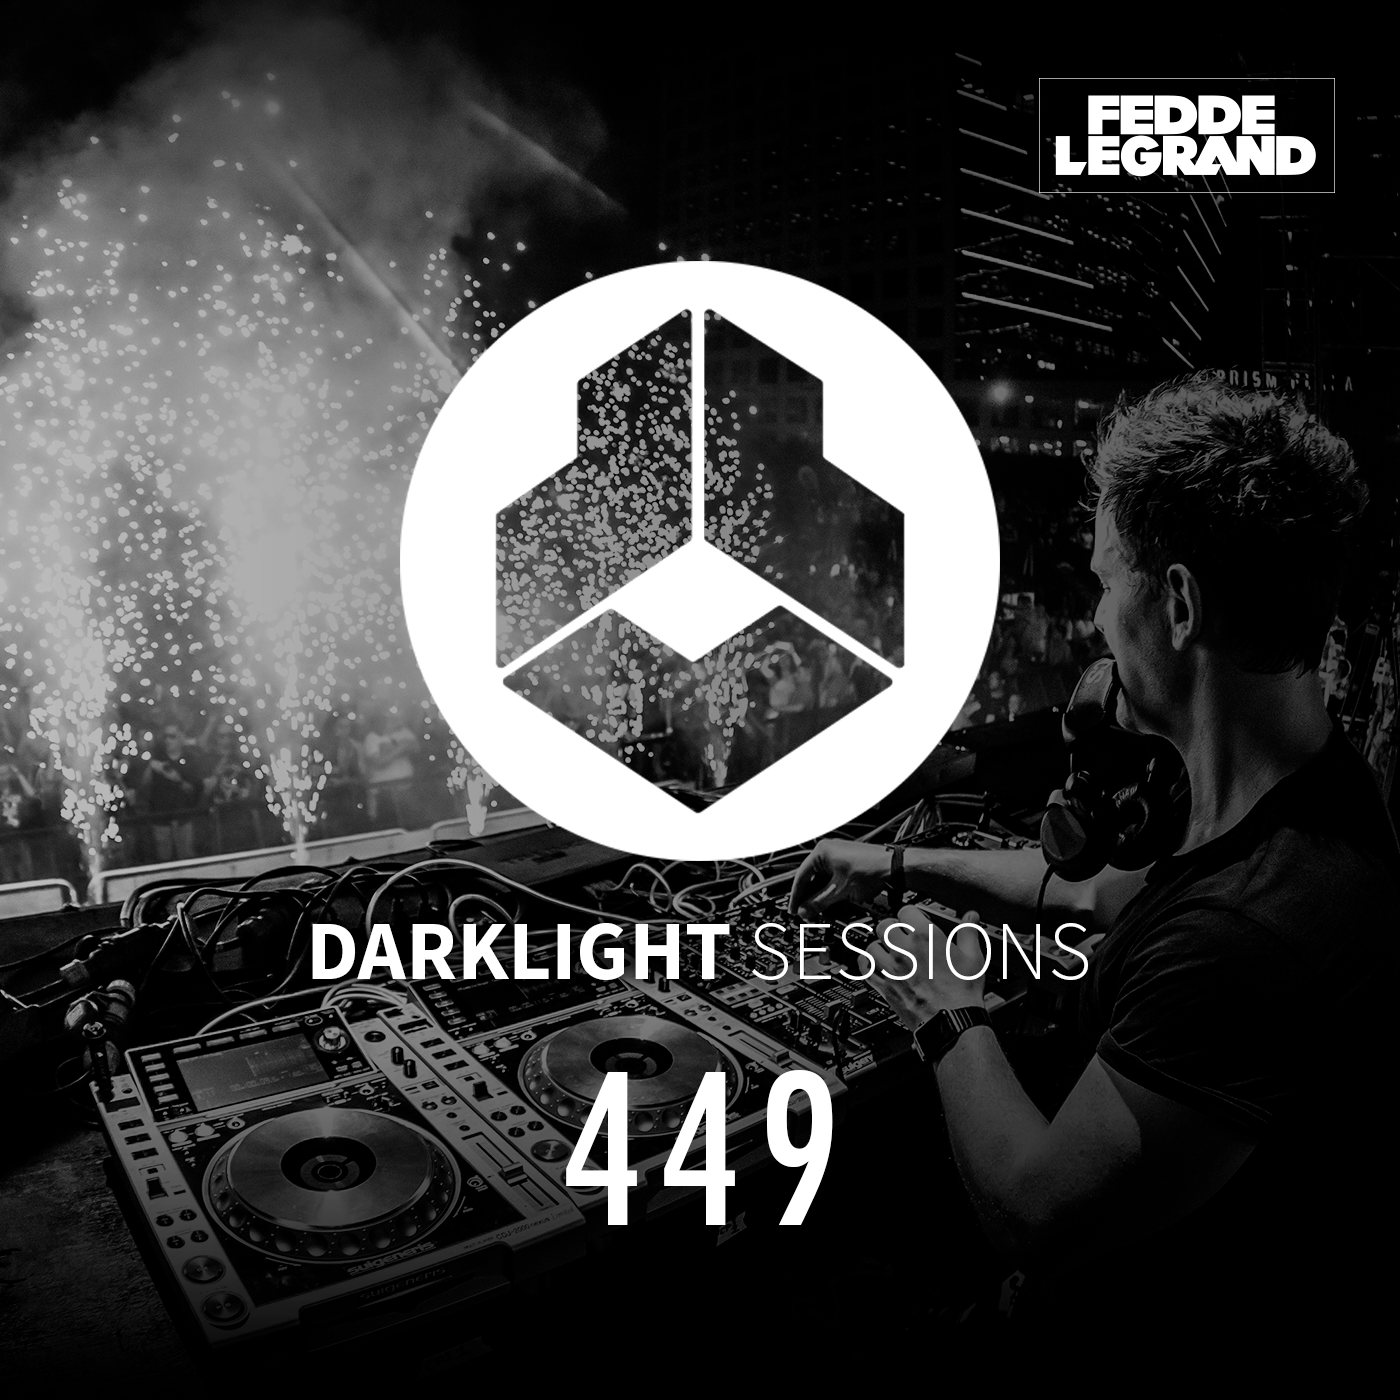 Darklight Sessions 449